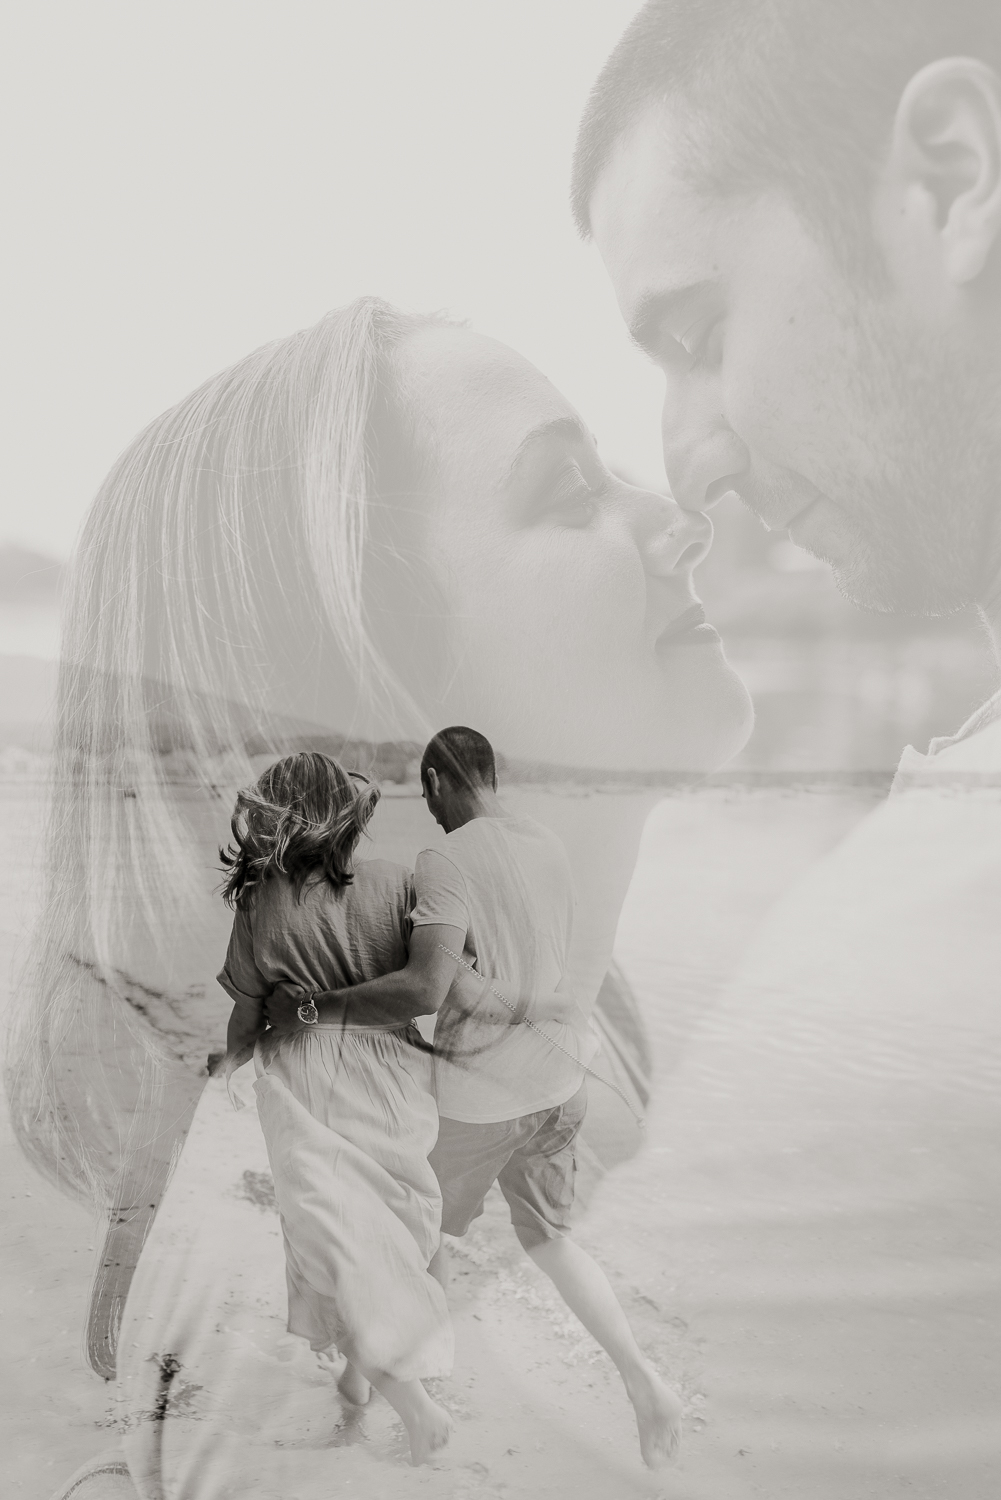 Double Exposure Photograph by Morgan Ellis from an anniversary session in Camden, Maine